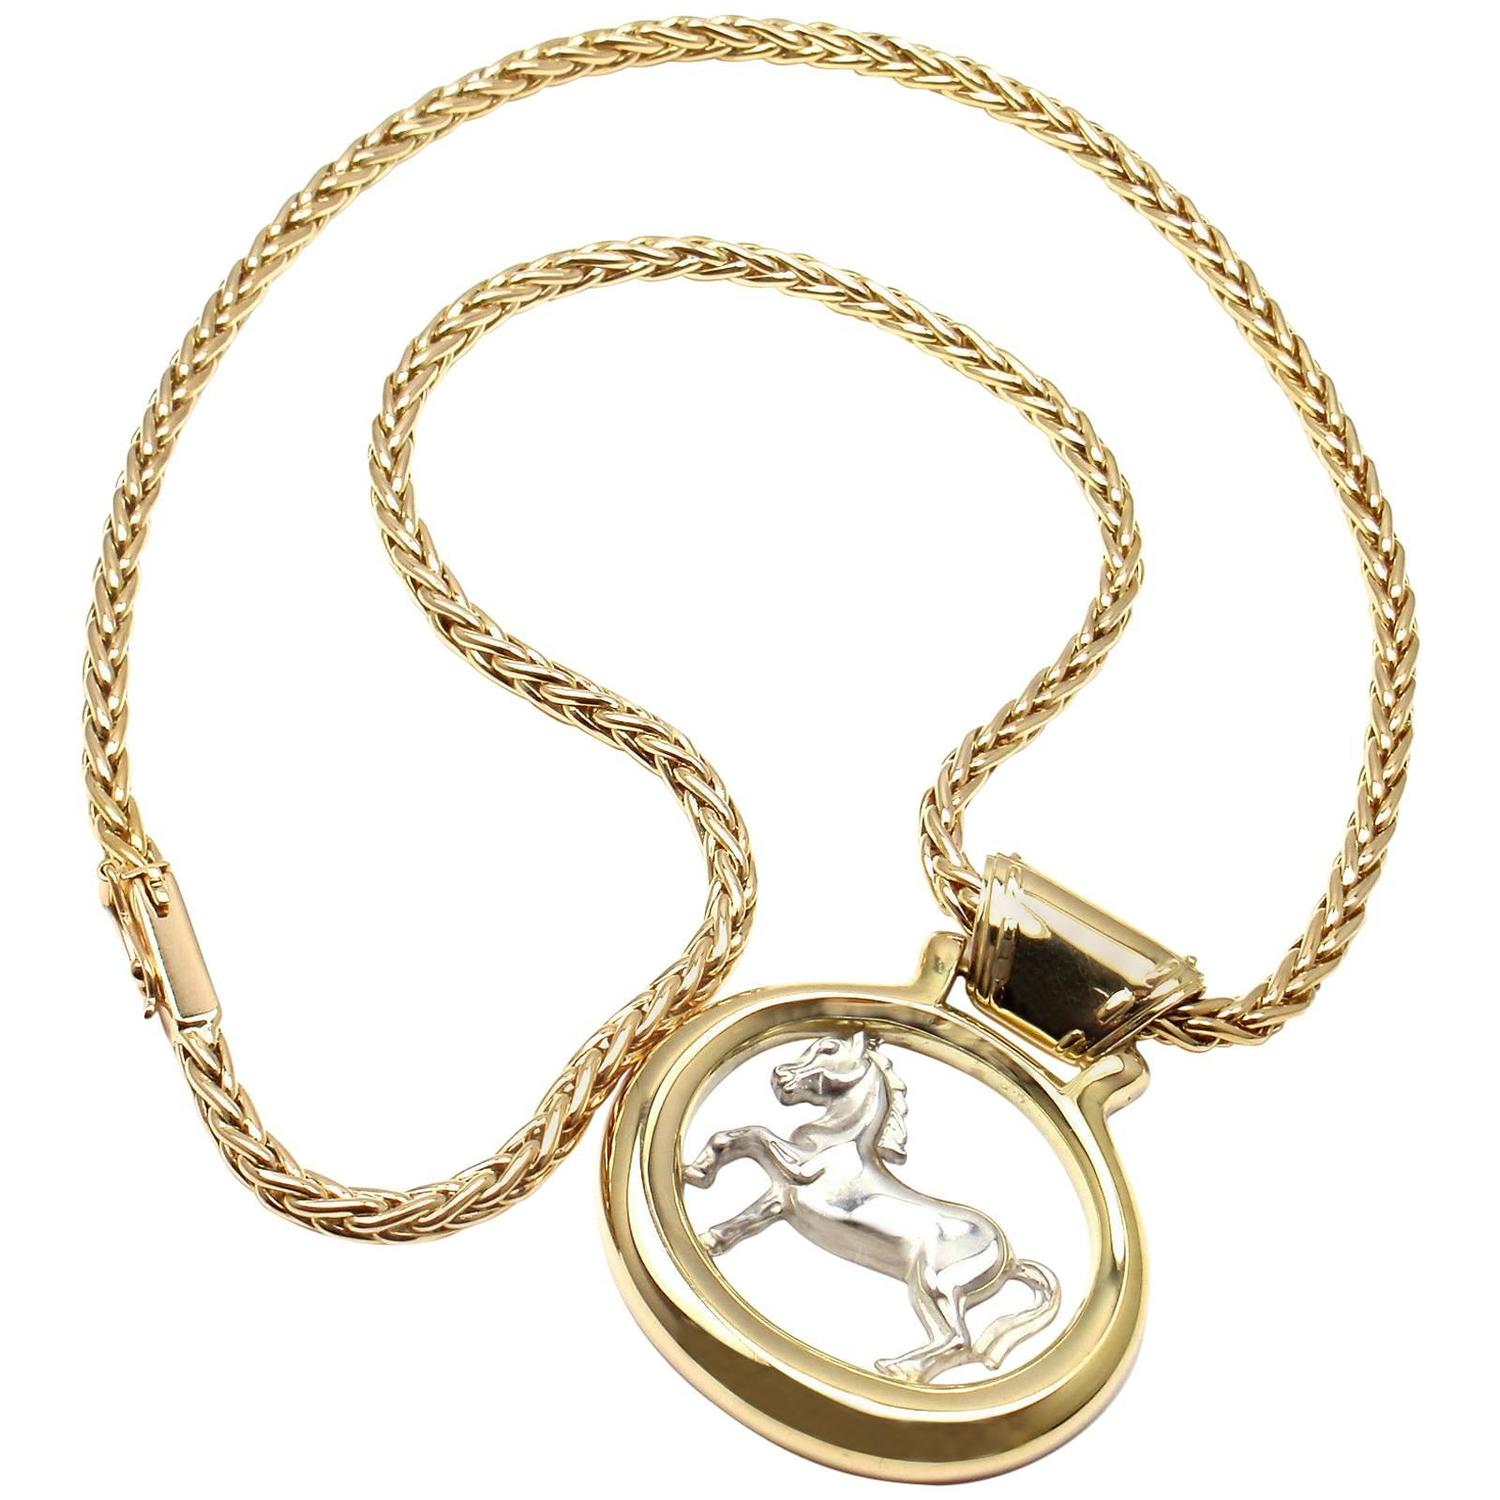 Hermes two color gold horse pendant necklace for sale at 1stdibs mozeypictures Gallery